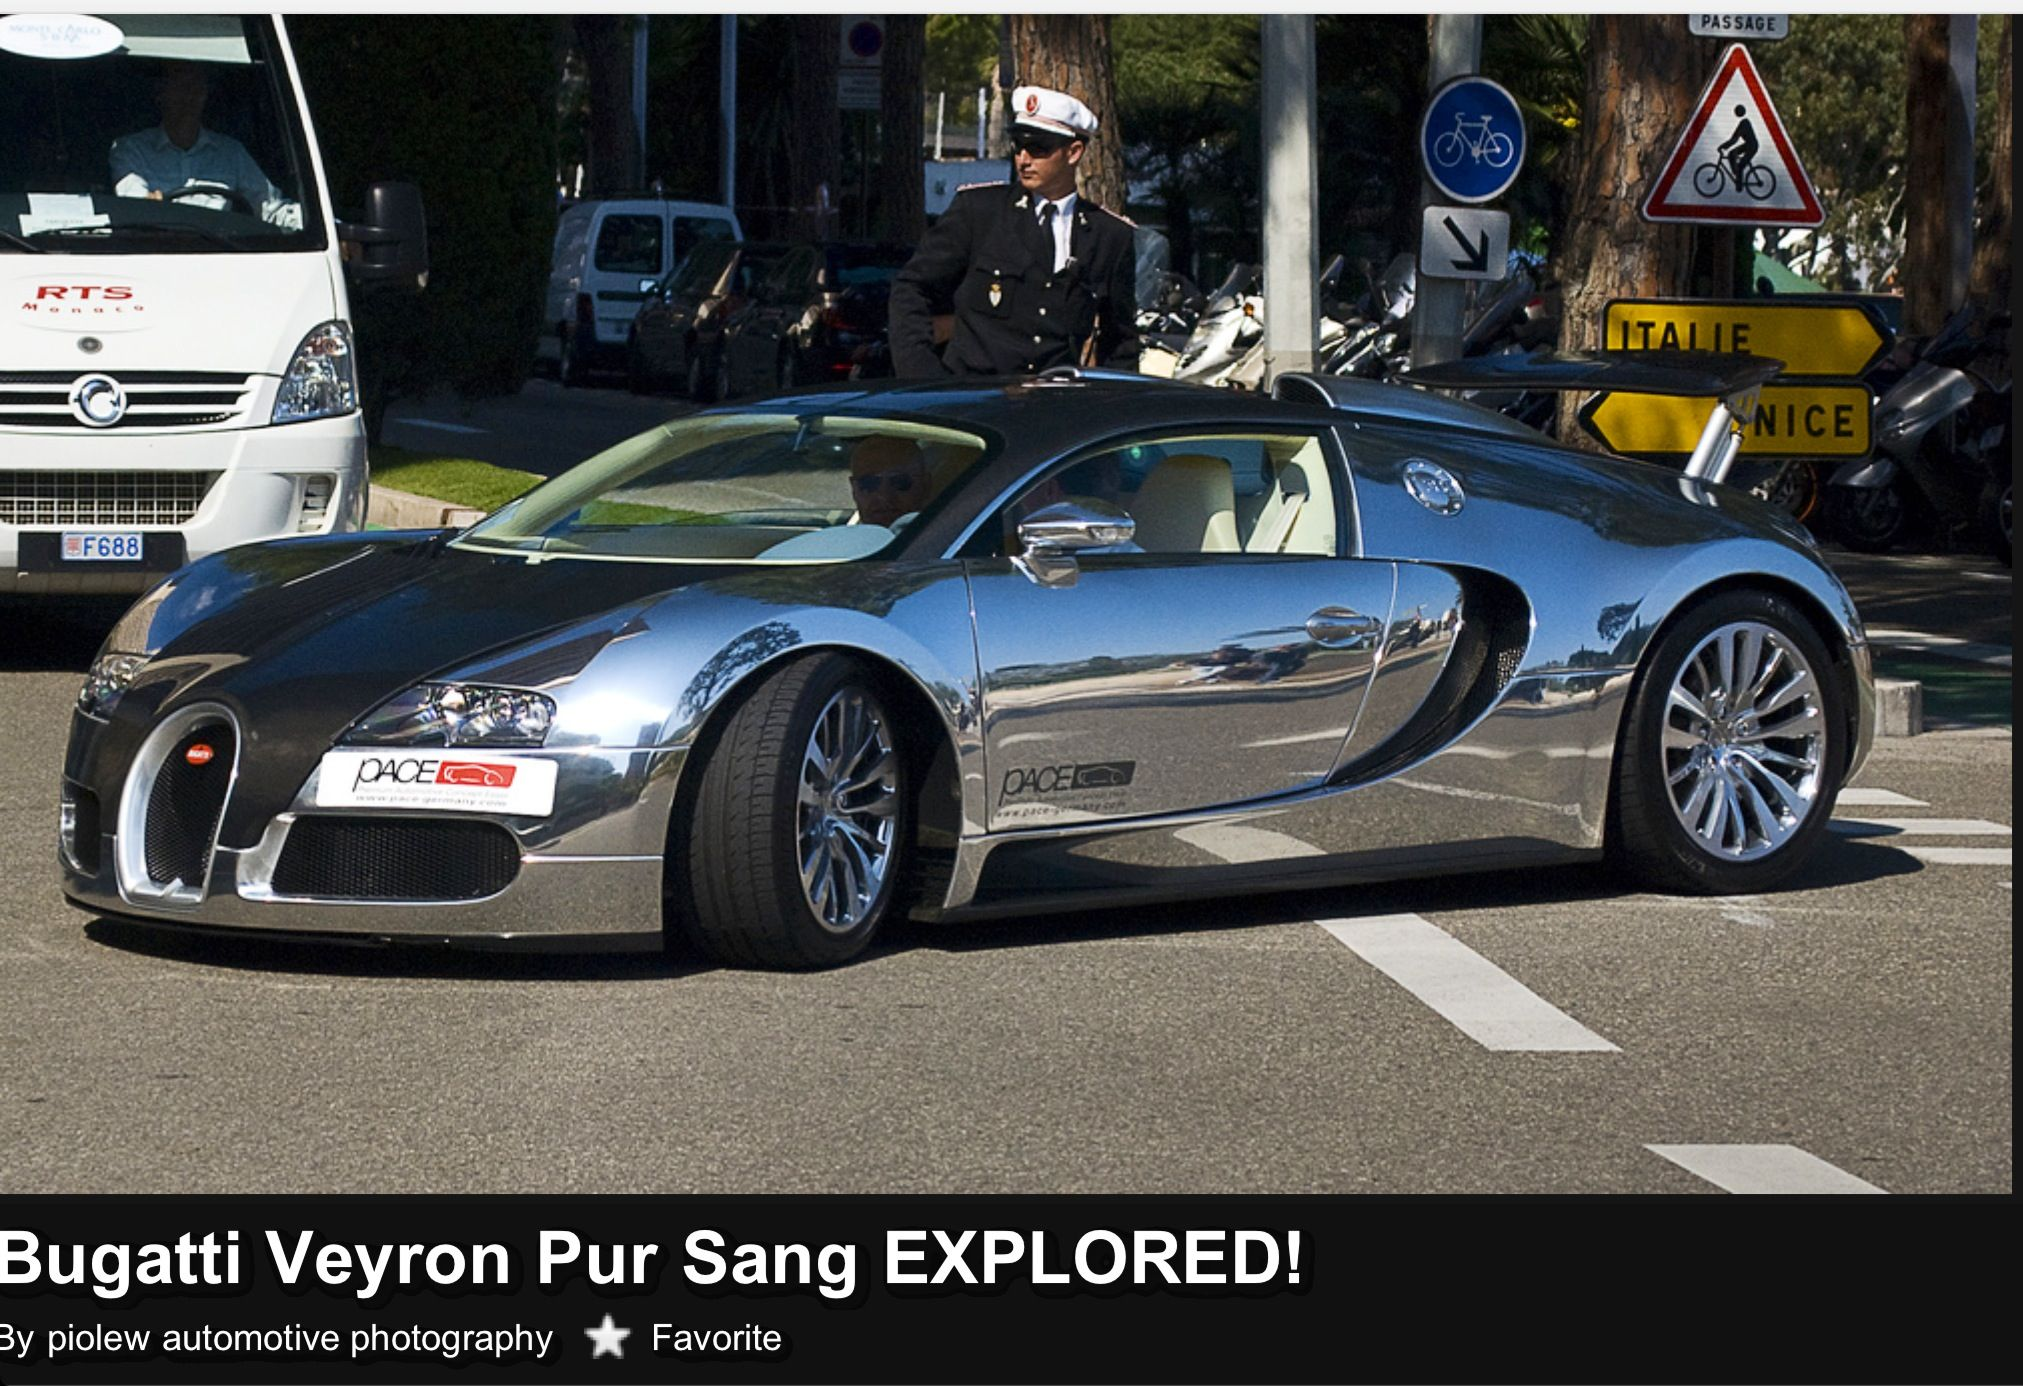 a77c0e1661bb62446d7507f5e9d286d8 Exciting Bugatti Veyron Cost for Oil Change Cars Trend